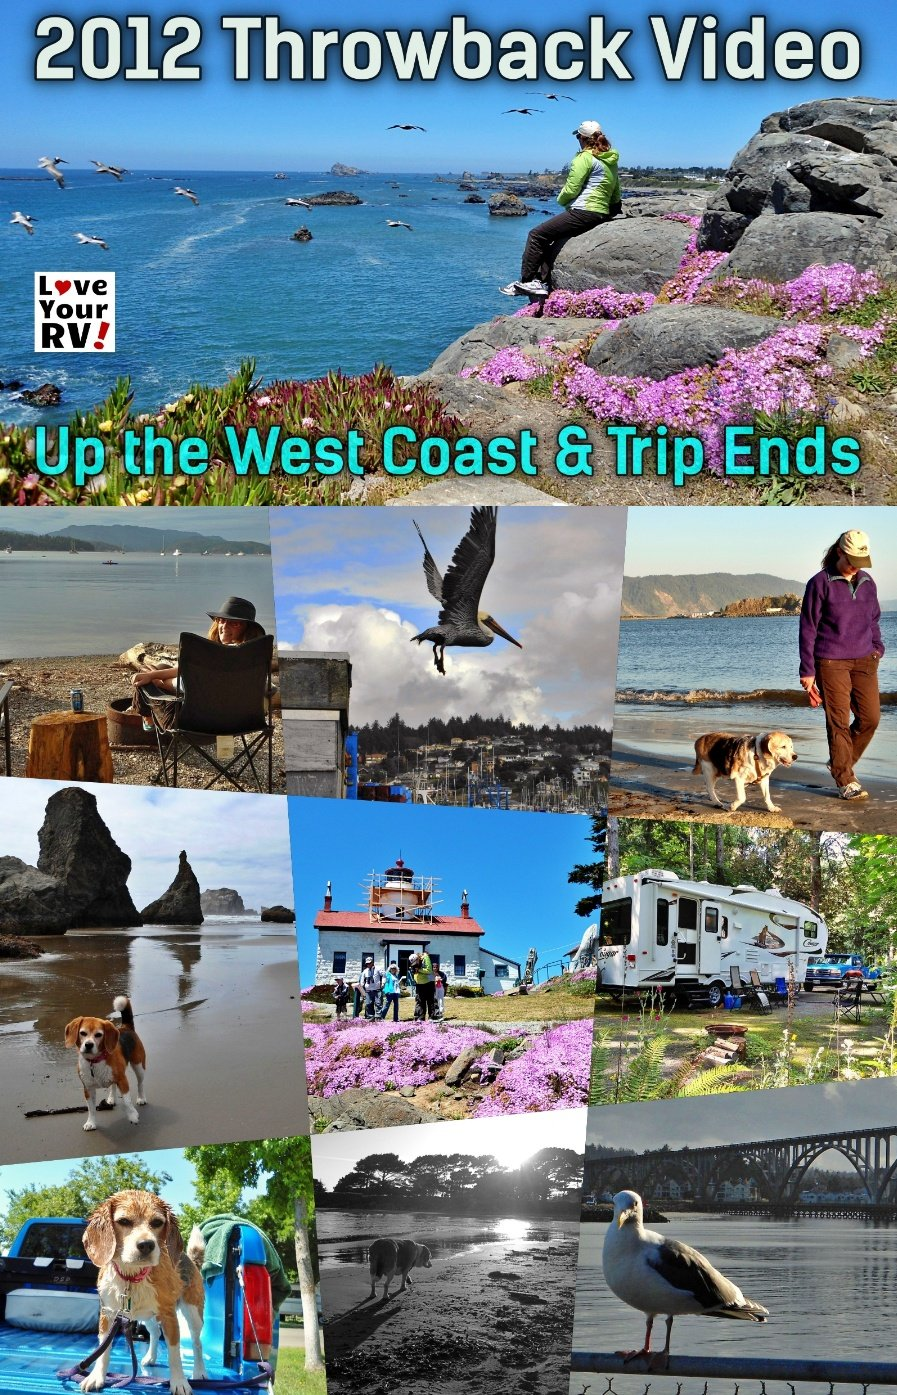 West Coast and One Year RVing Trip Ends 2012 Throwback Video